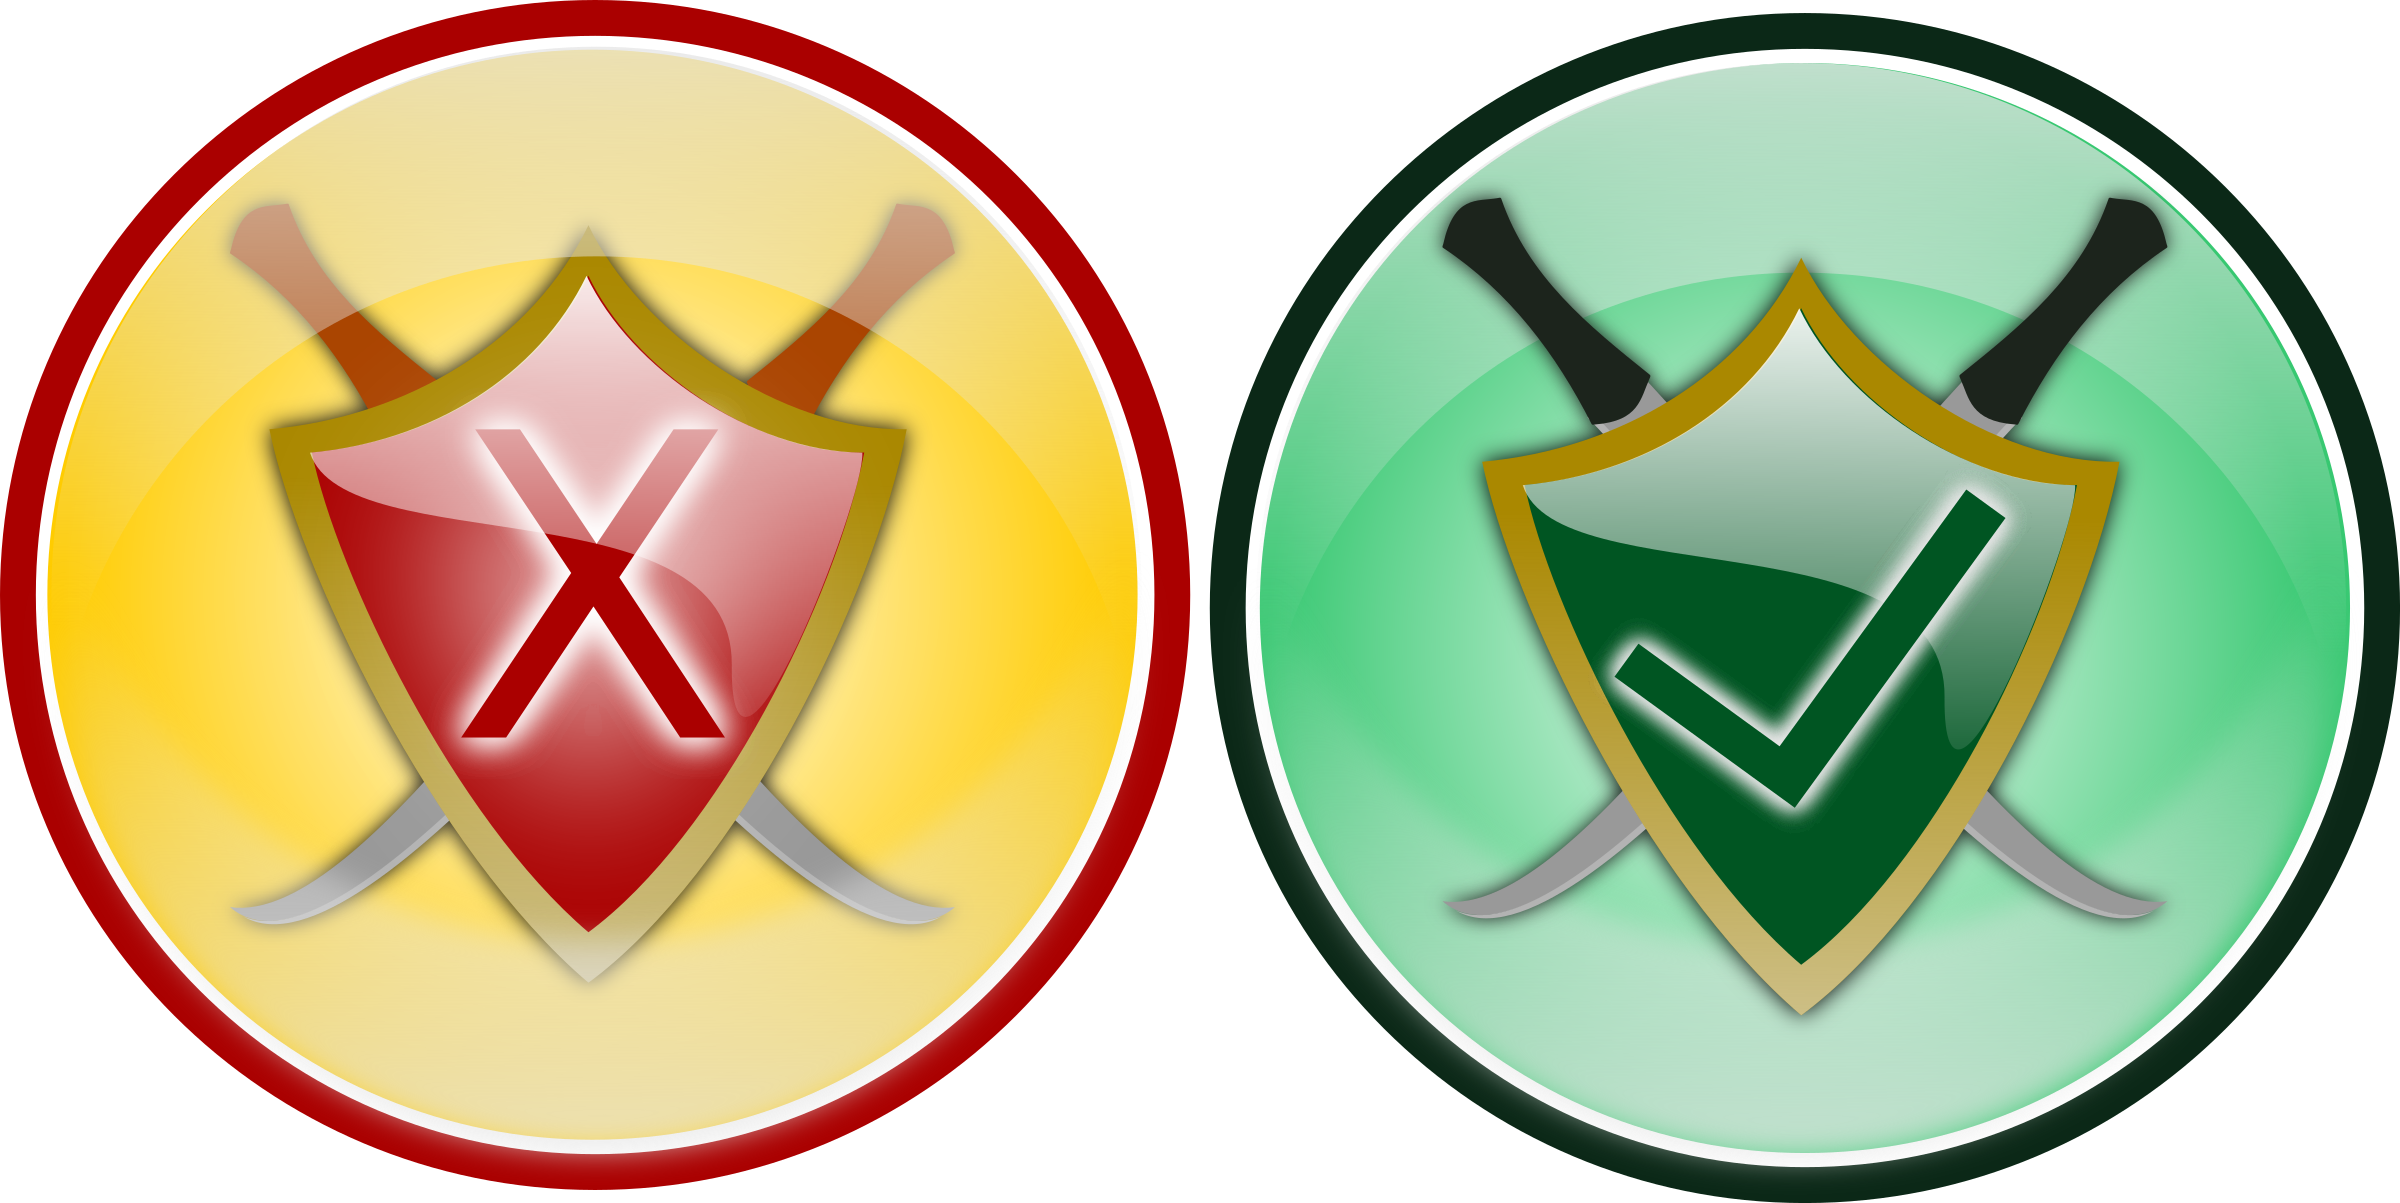 Clipart - Security Icon 2: https://openclipart.org/detail/134167/security-icon-2